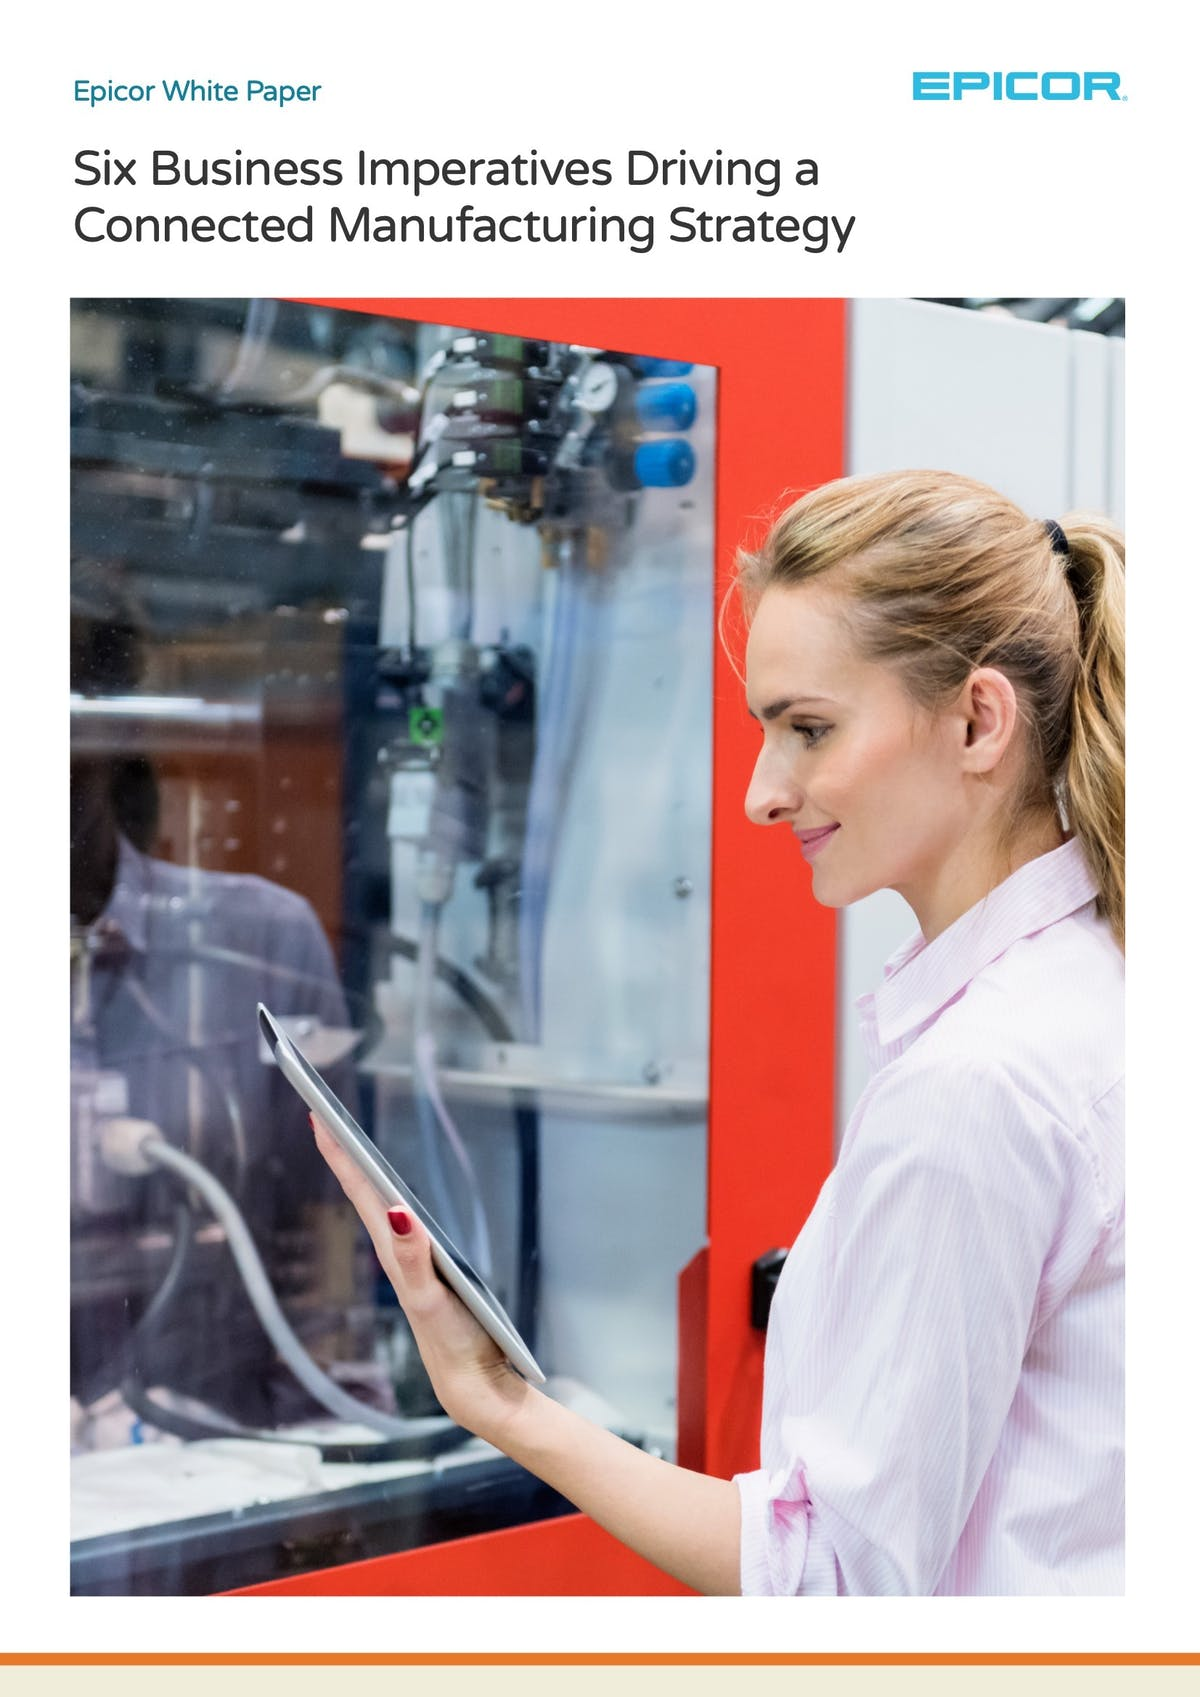 Epicor ERP White Paper - Six Business Imperatives Driving a Connected Manufacturing Strategy